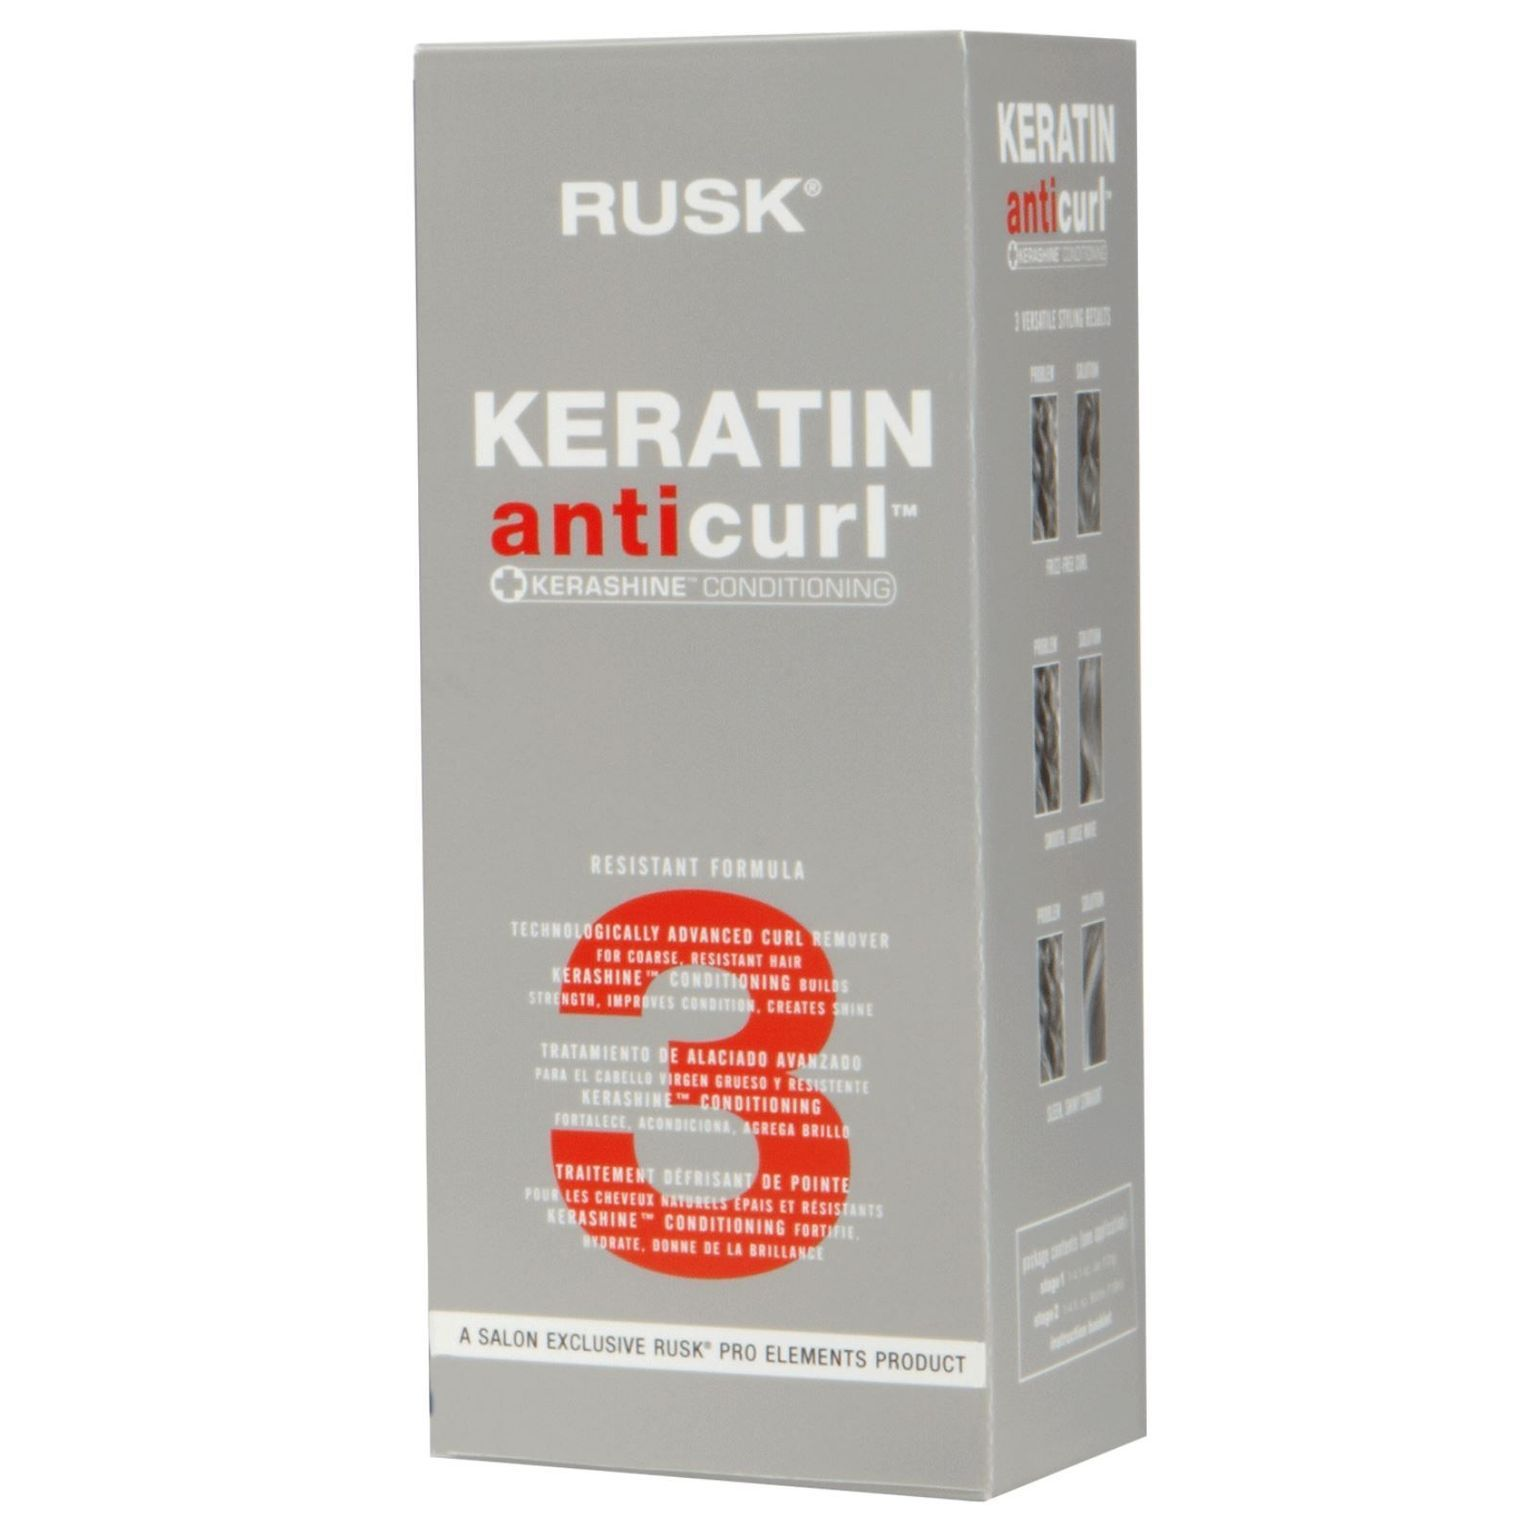 Radical Keratin Anti-Curl Kerashine Conditioning Treatment